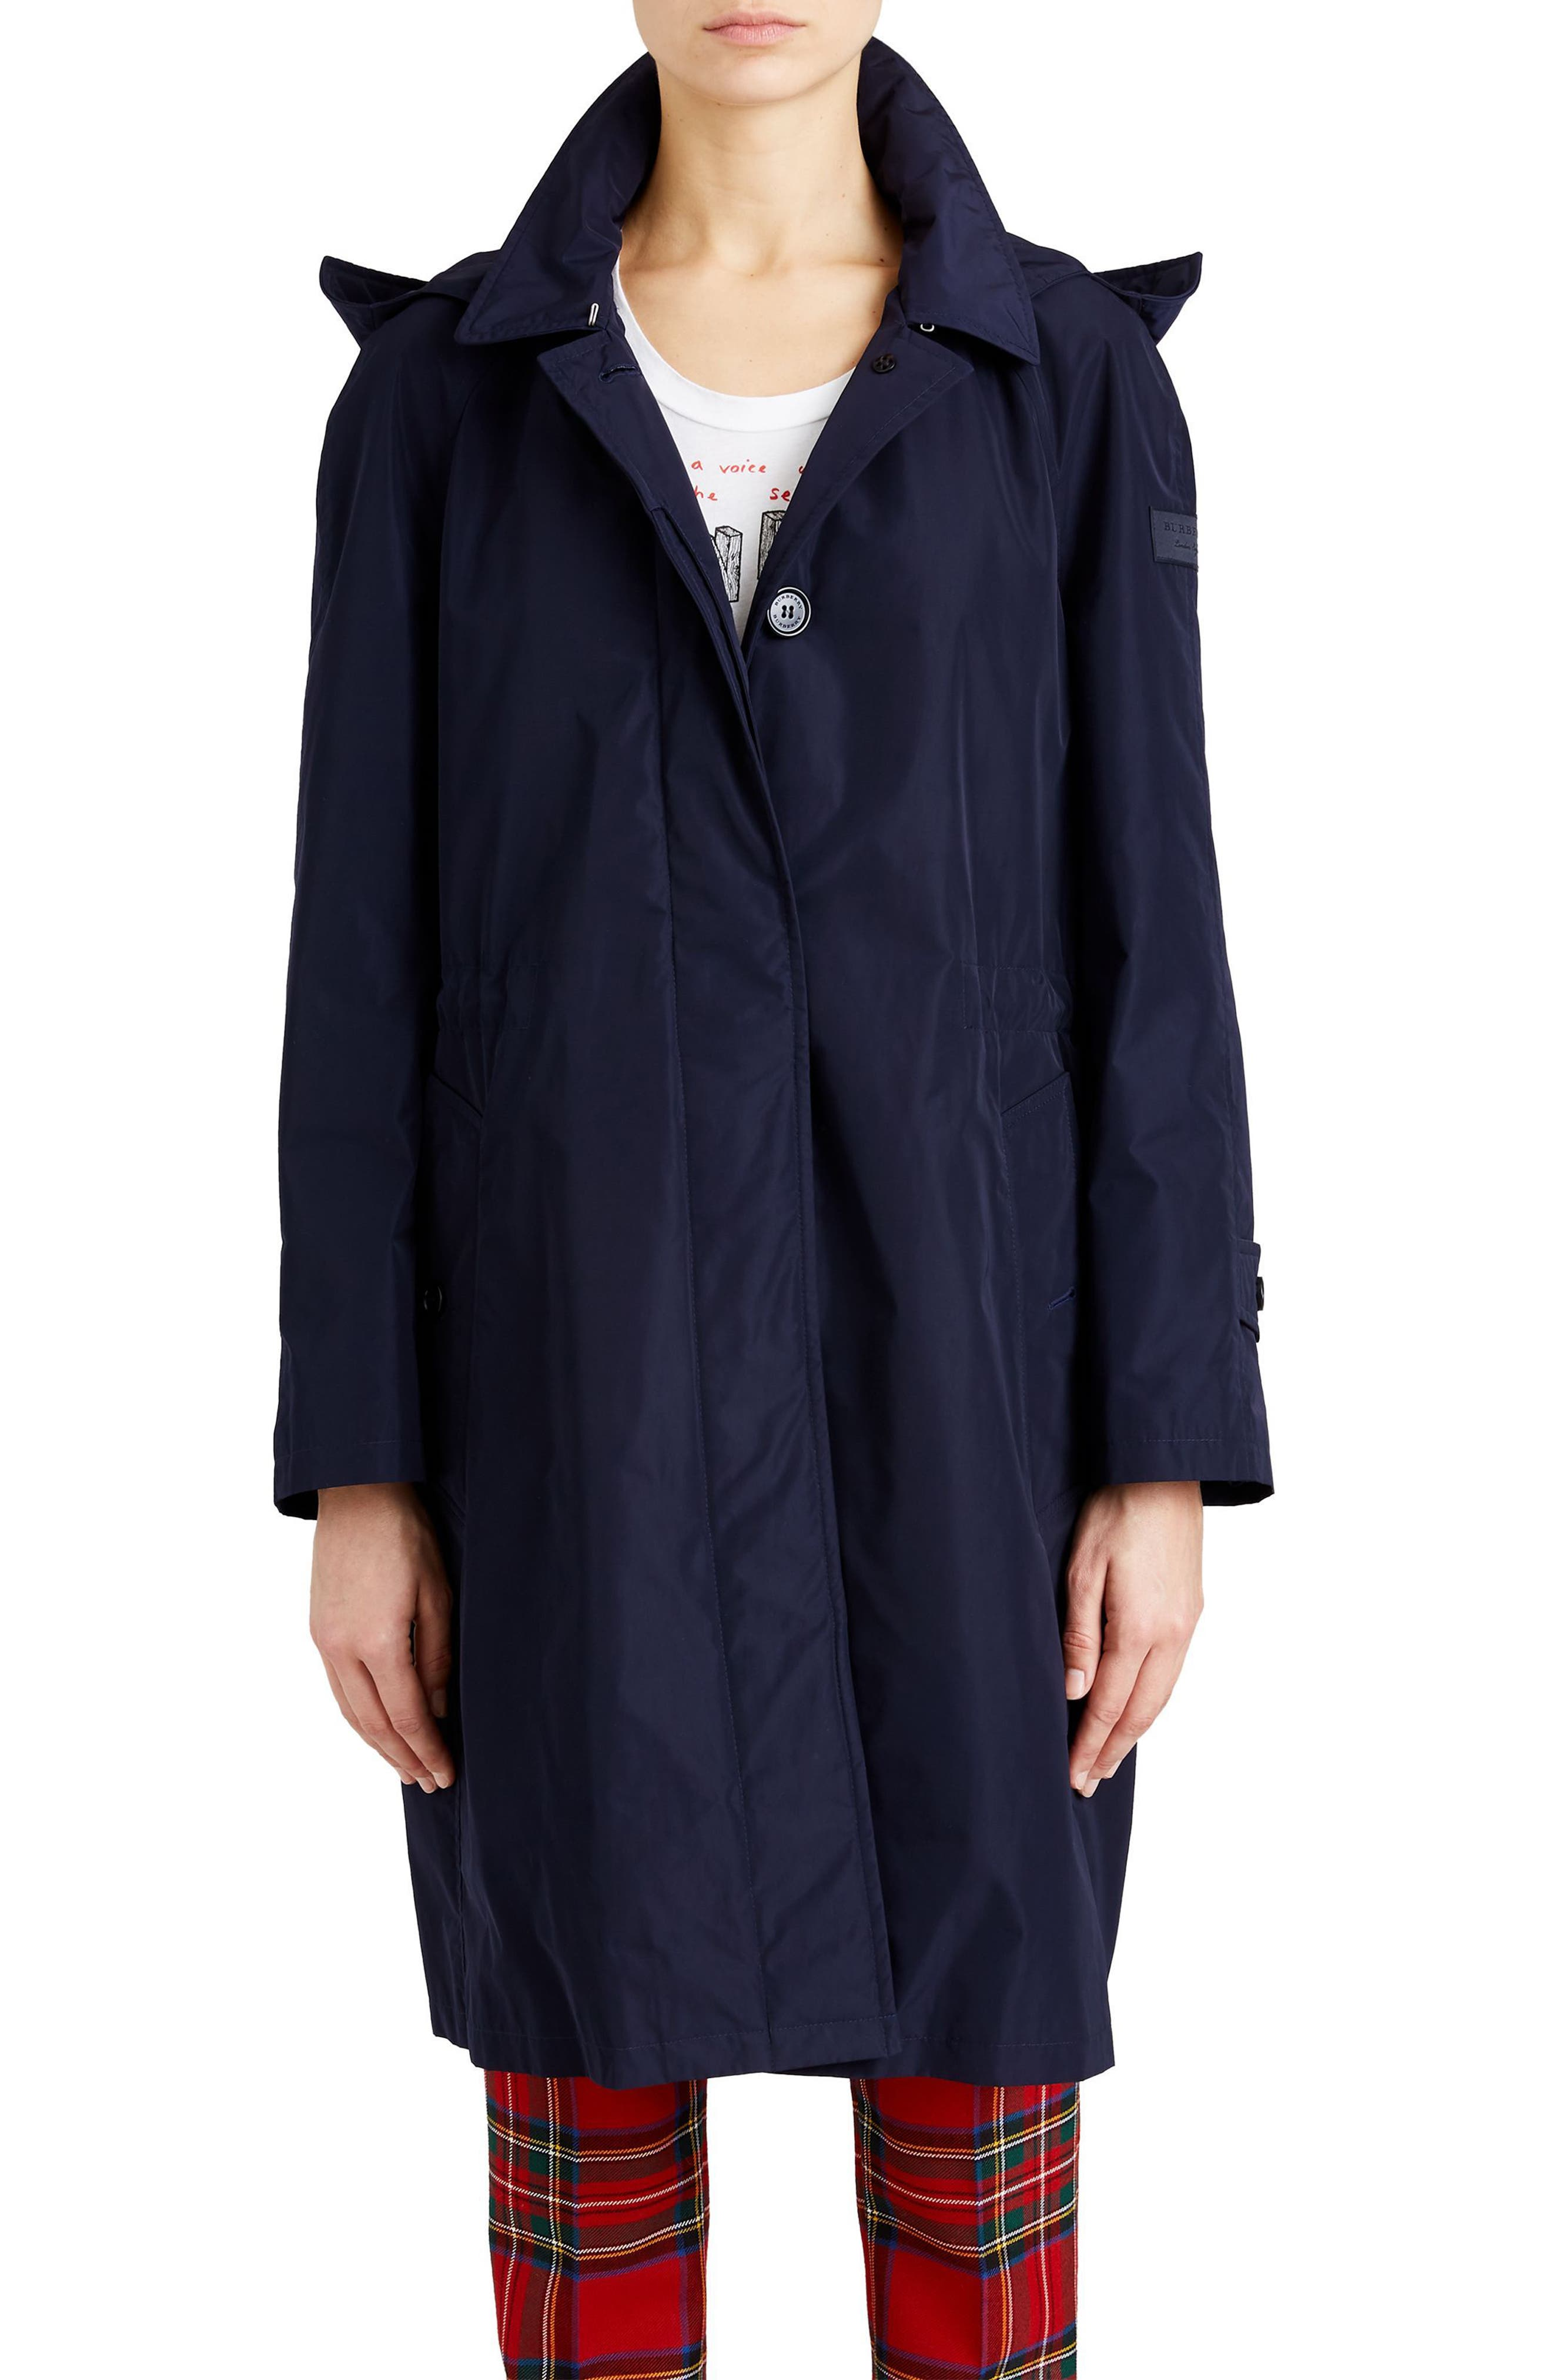 Burberry Women's Clothing | Nordstrom : burberry quilted trench - Adamdwight.com